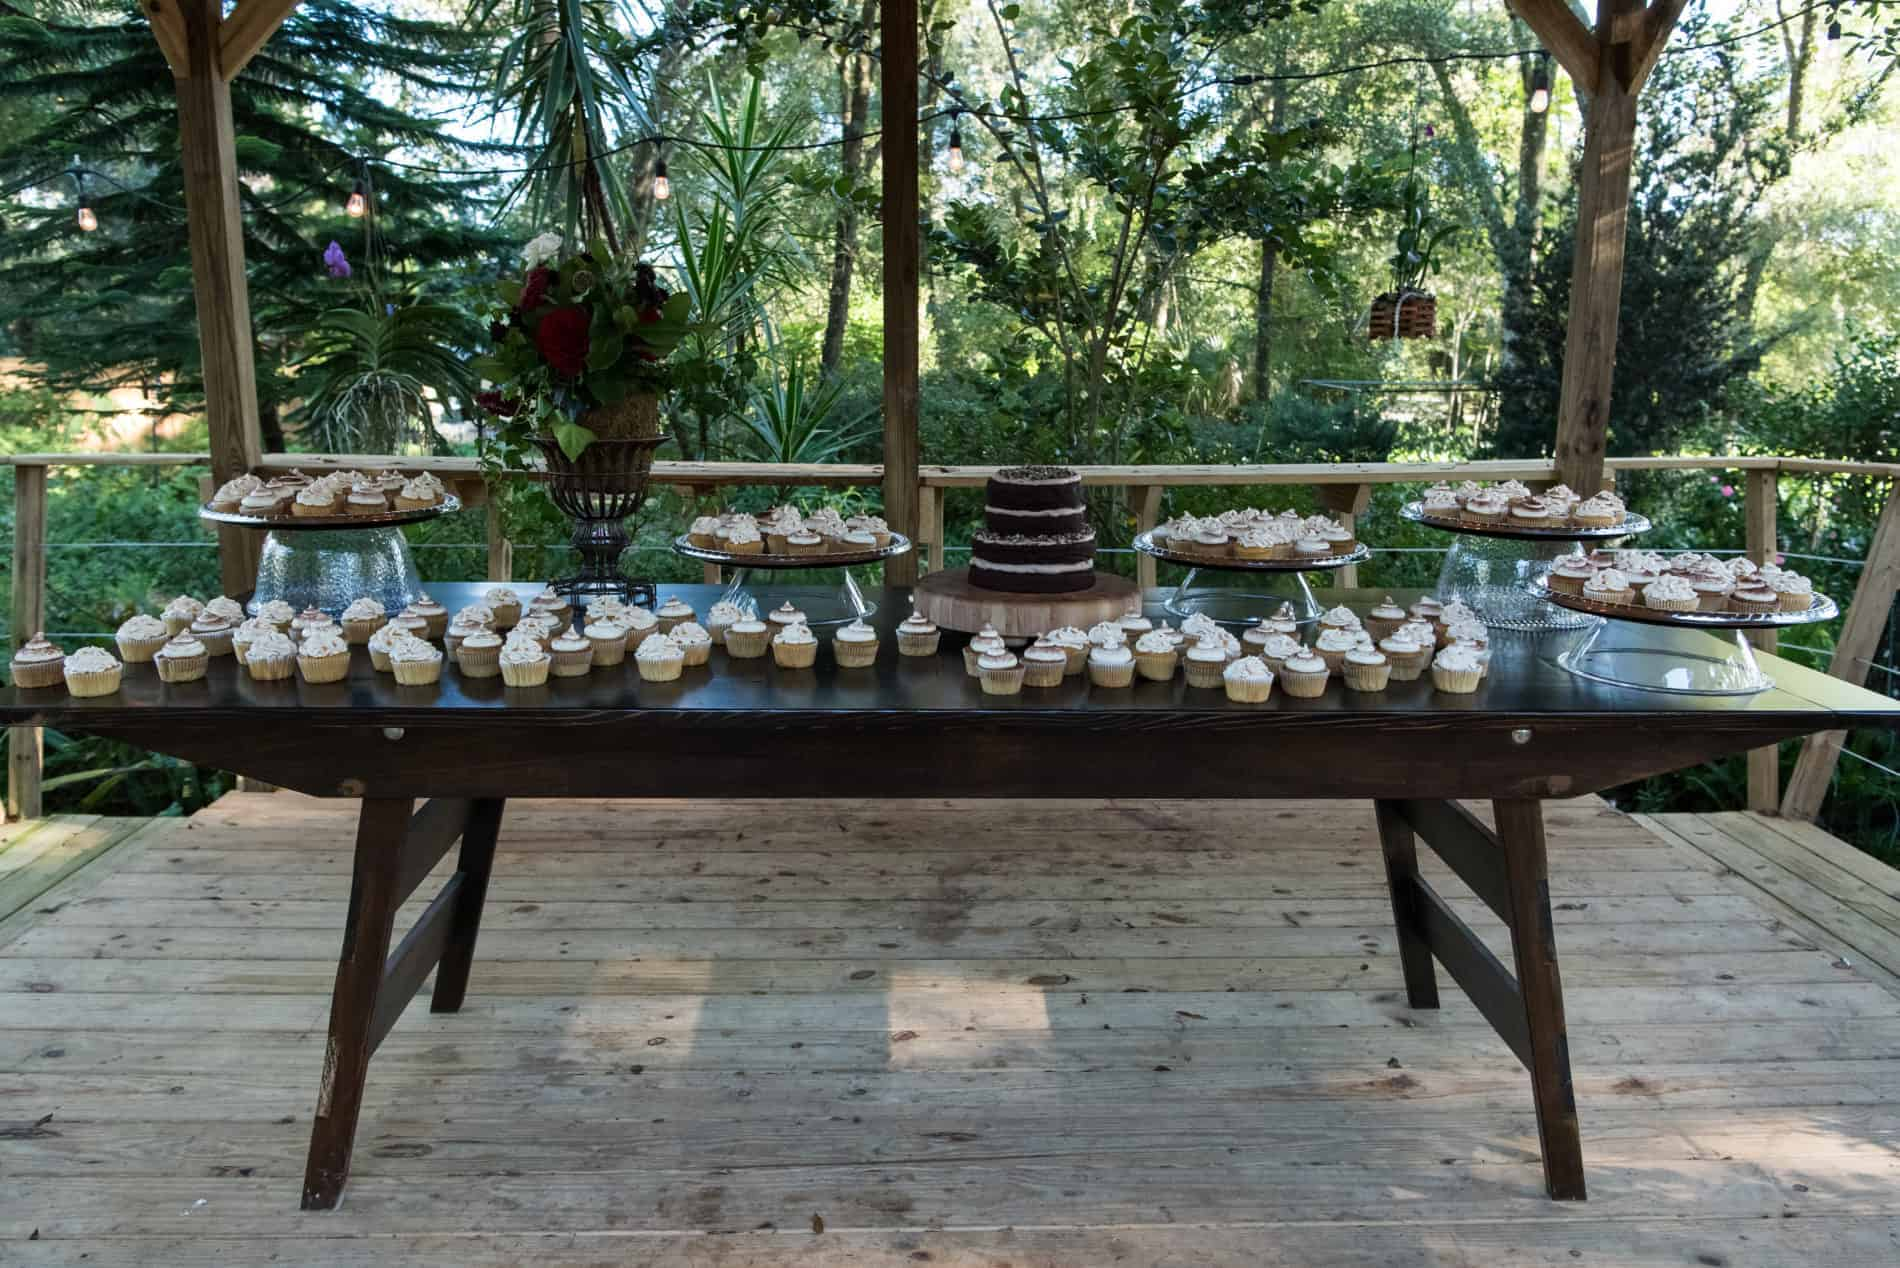 Outdoor dessert bar together with a fall themed wedding